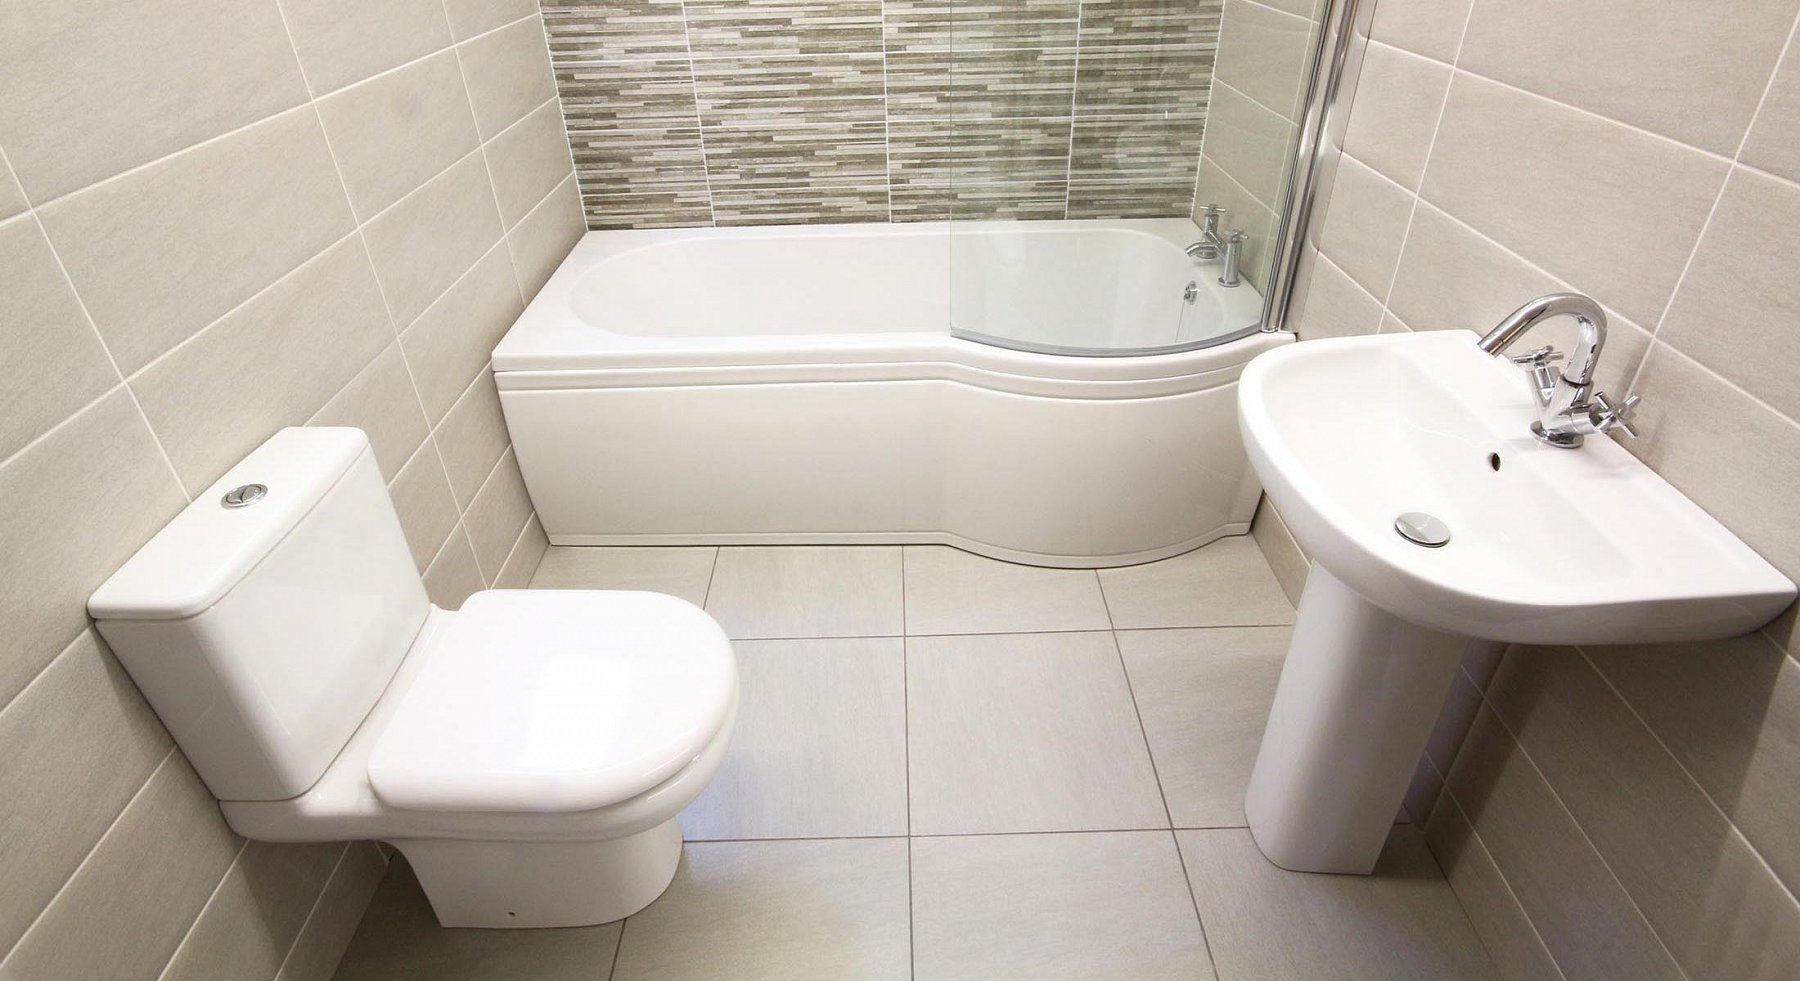 Tiles Unlimited Huddersfield - Tile and Bathroom suit Specialists